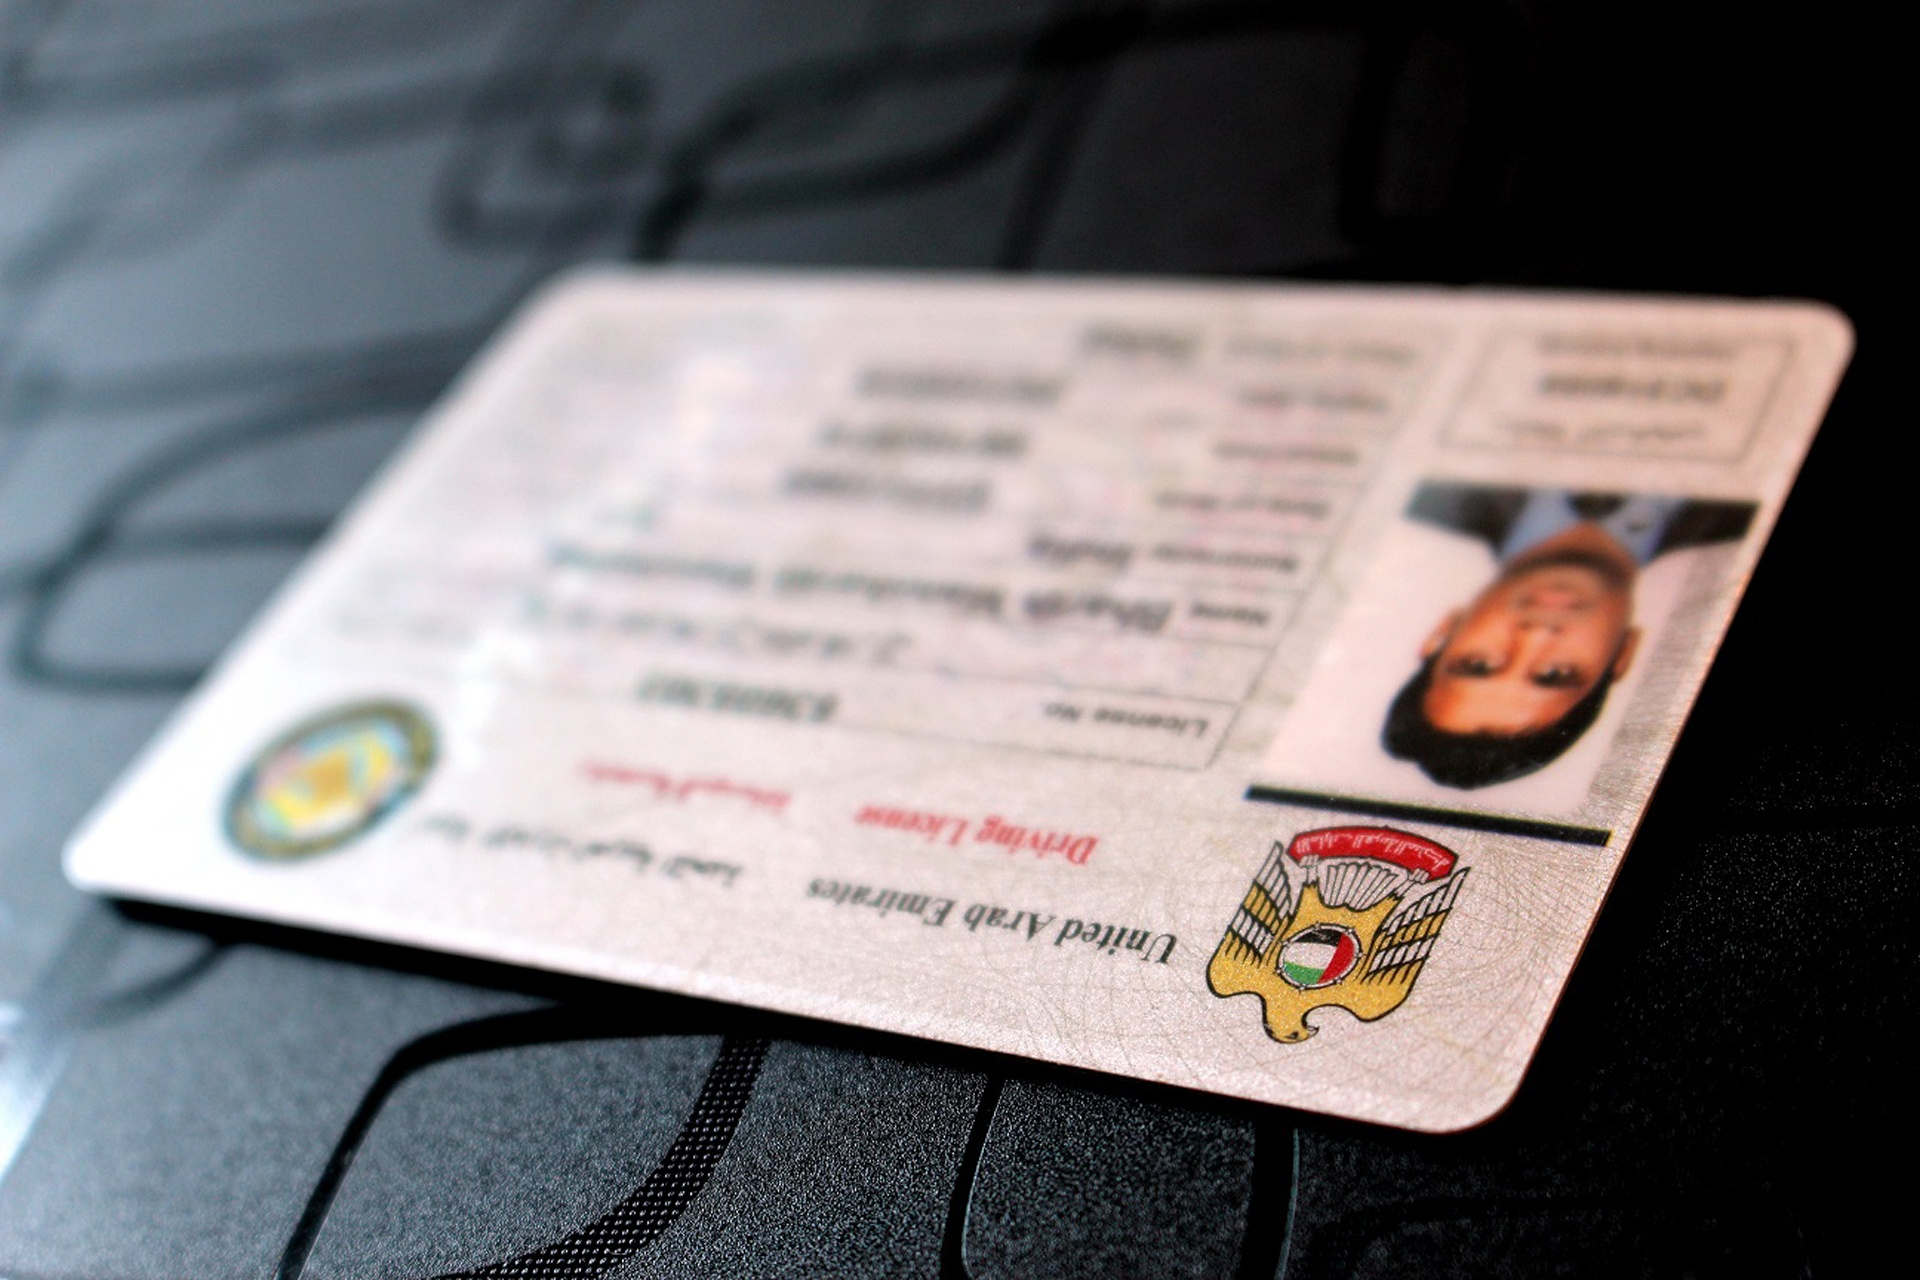 How to renew your Abu Dhabi driver's license in Dubai